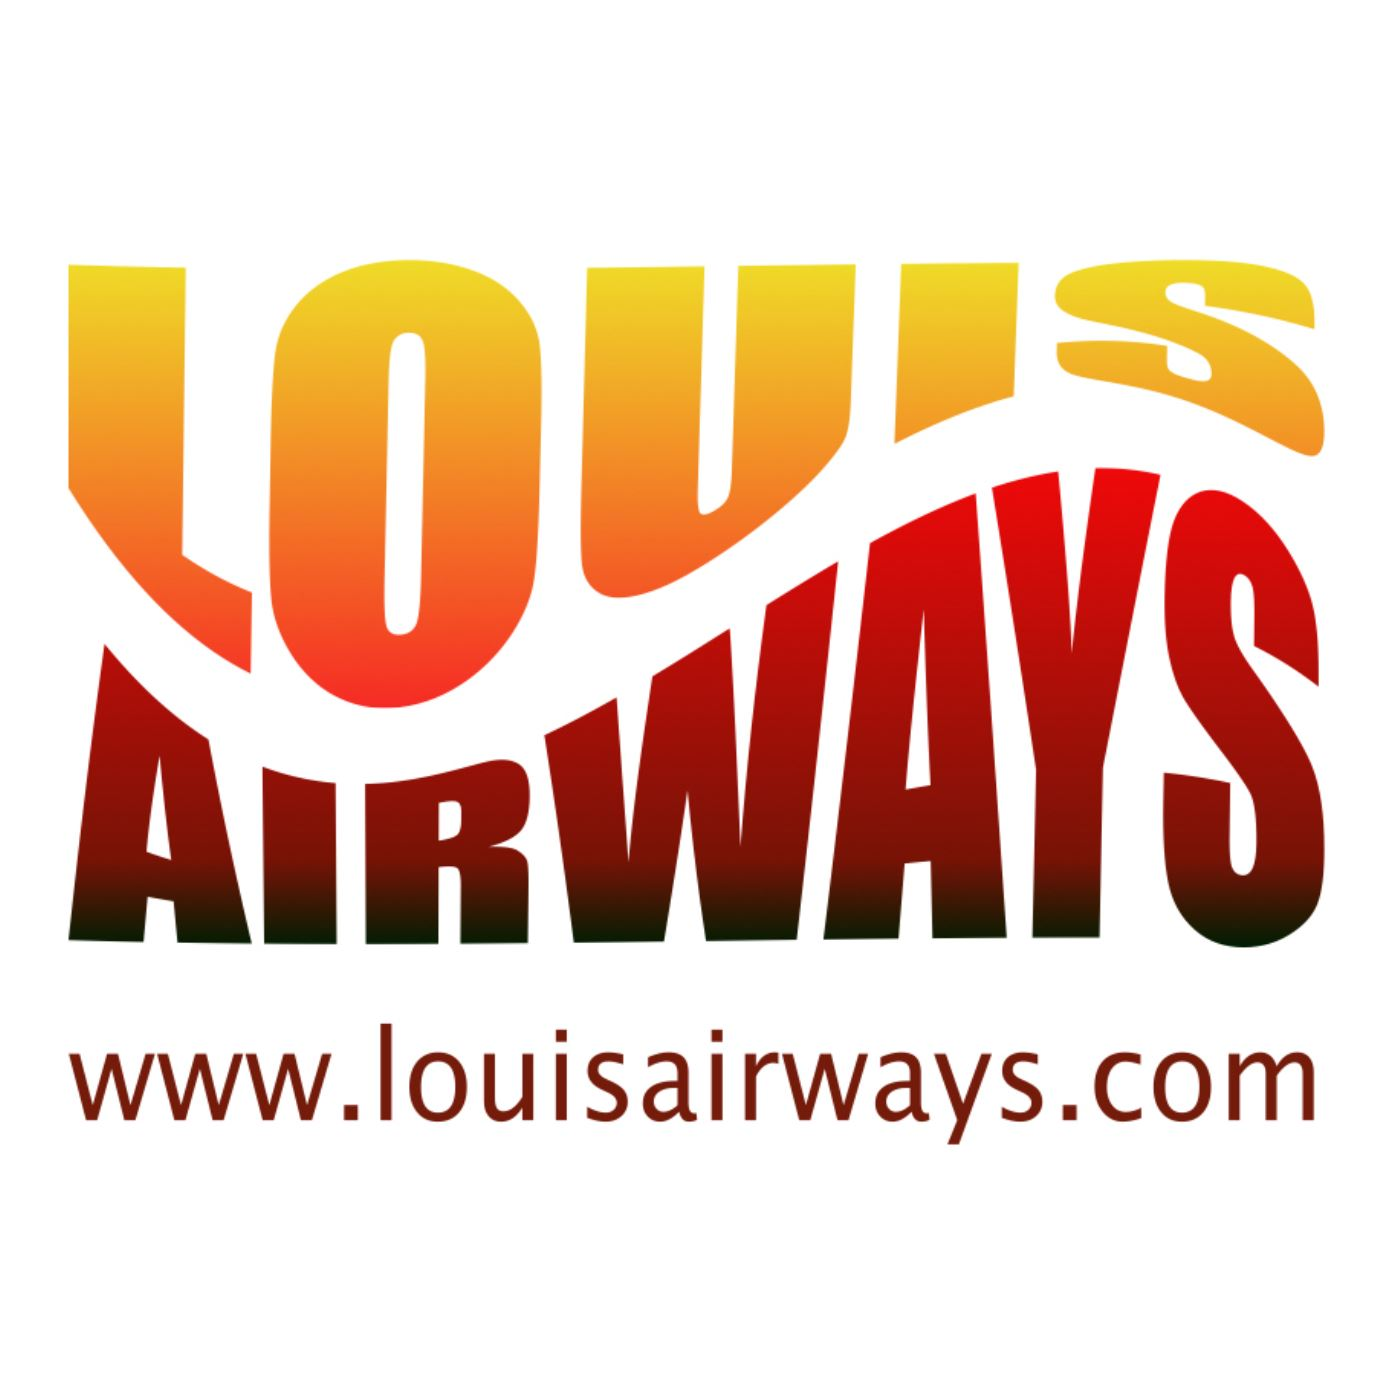 Louis Airway's